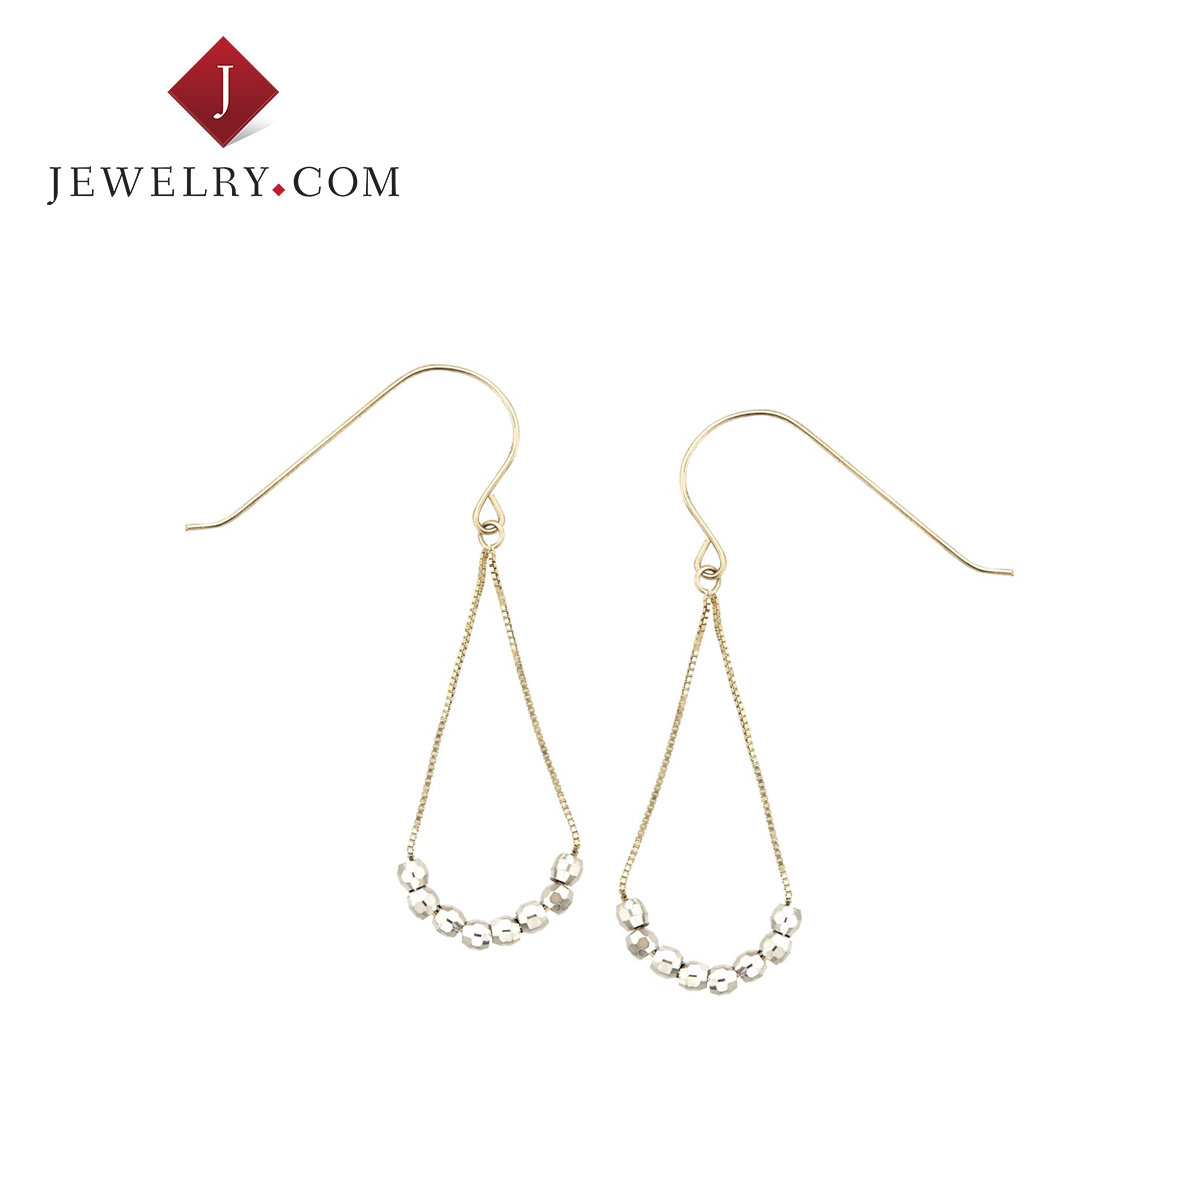 Ms. k gold color beads shaped droplight Jewelry.com charm earrings fashion jewelry earrings